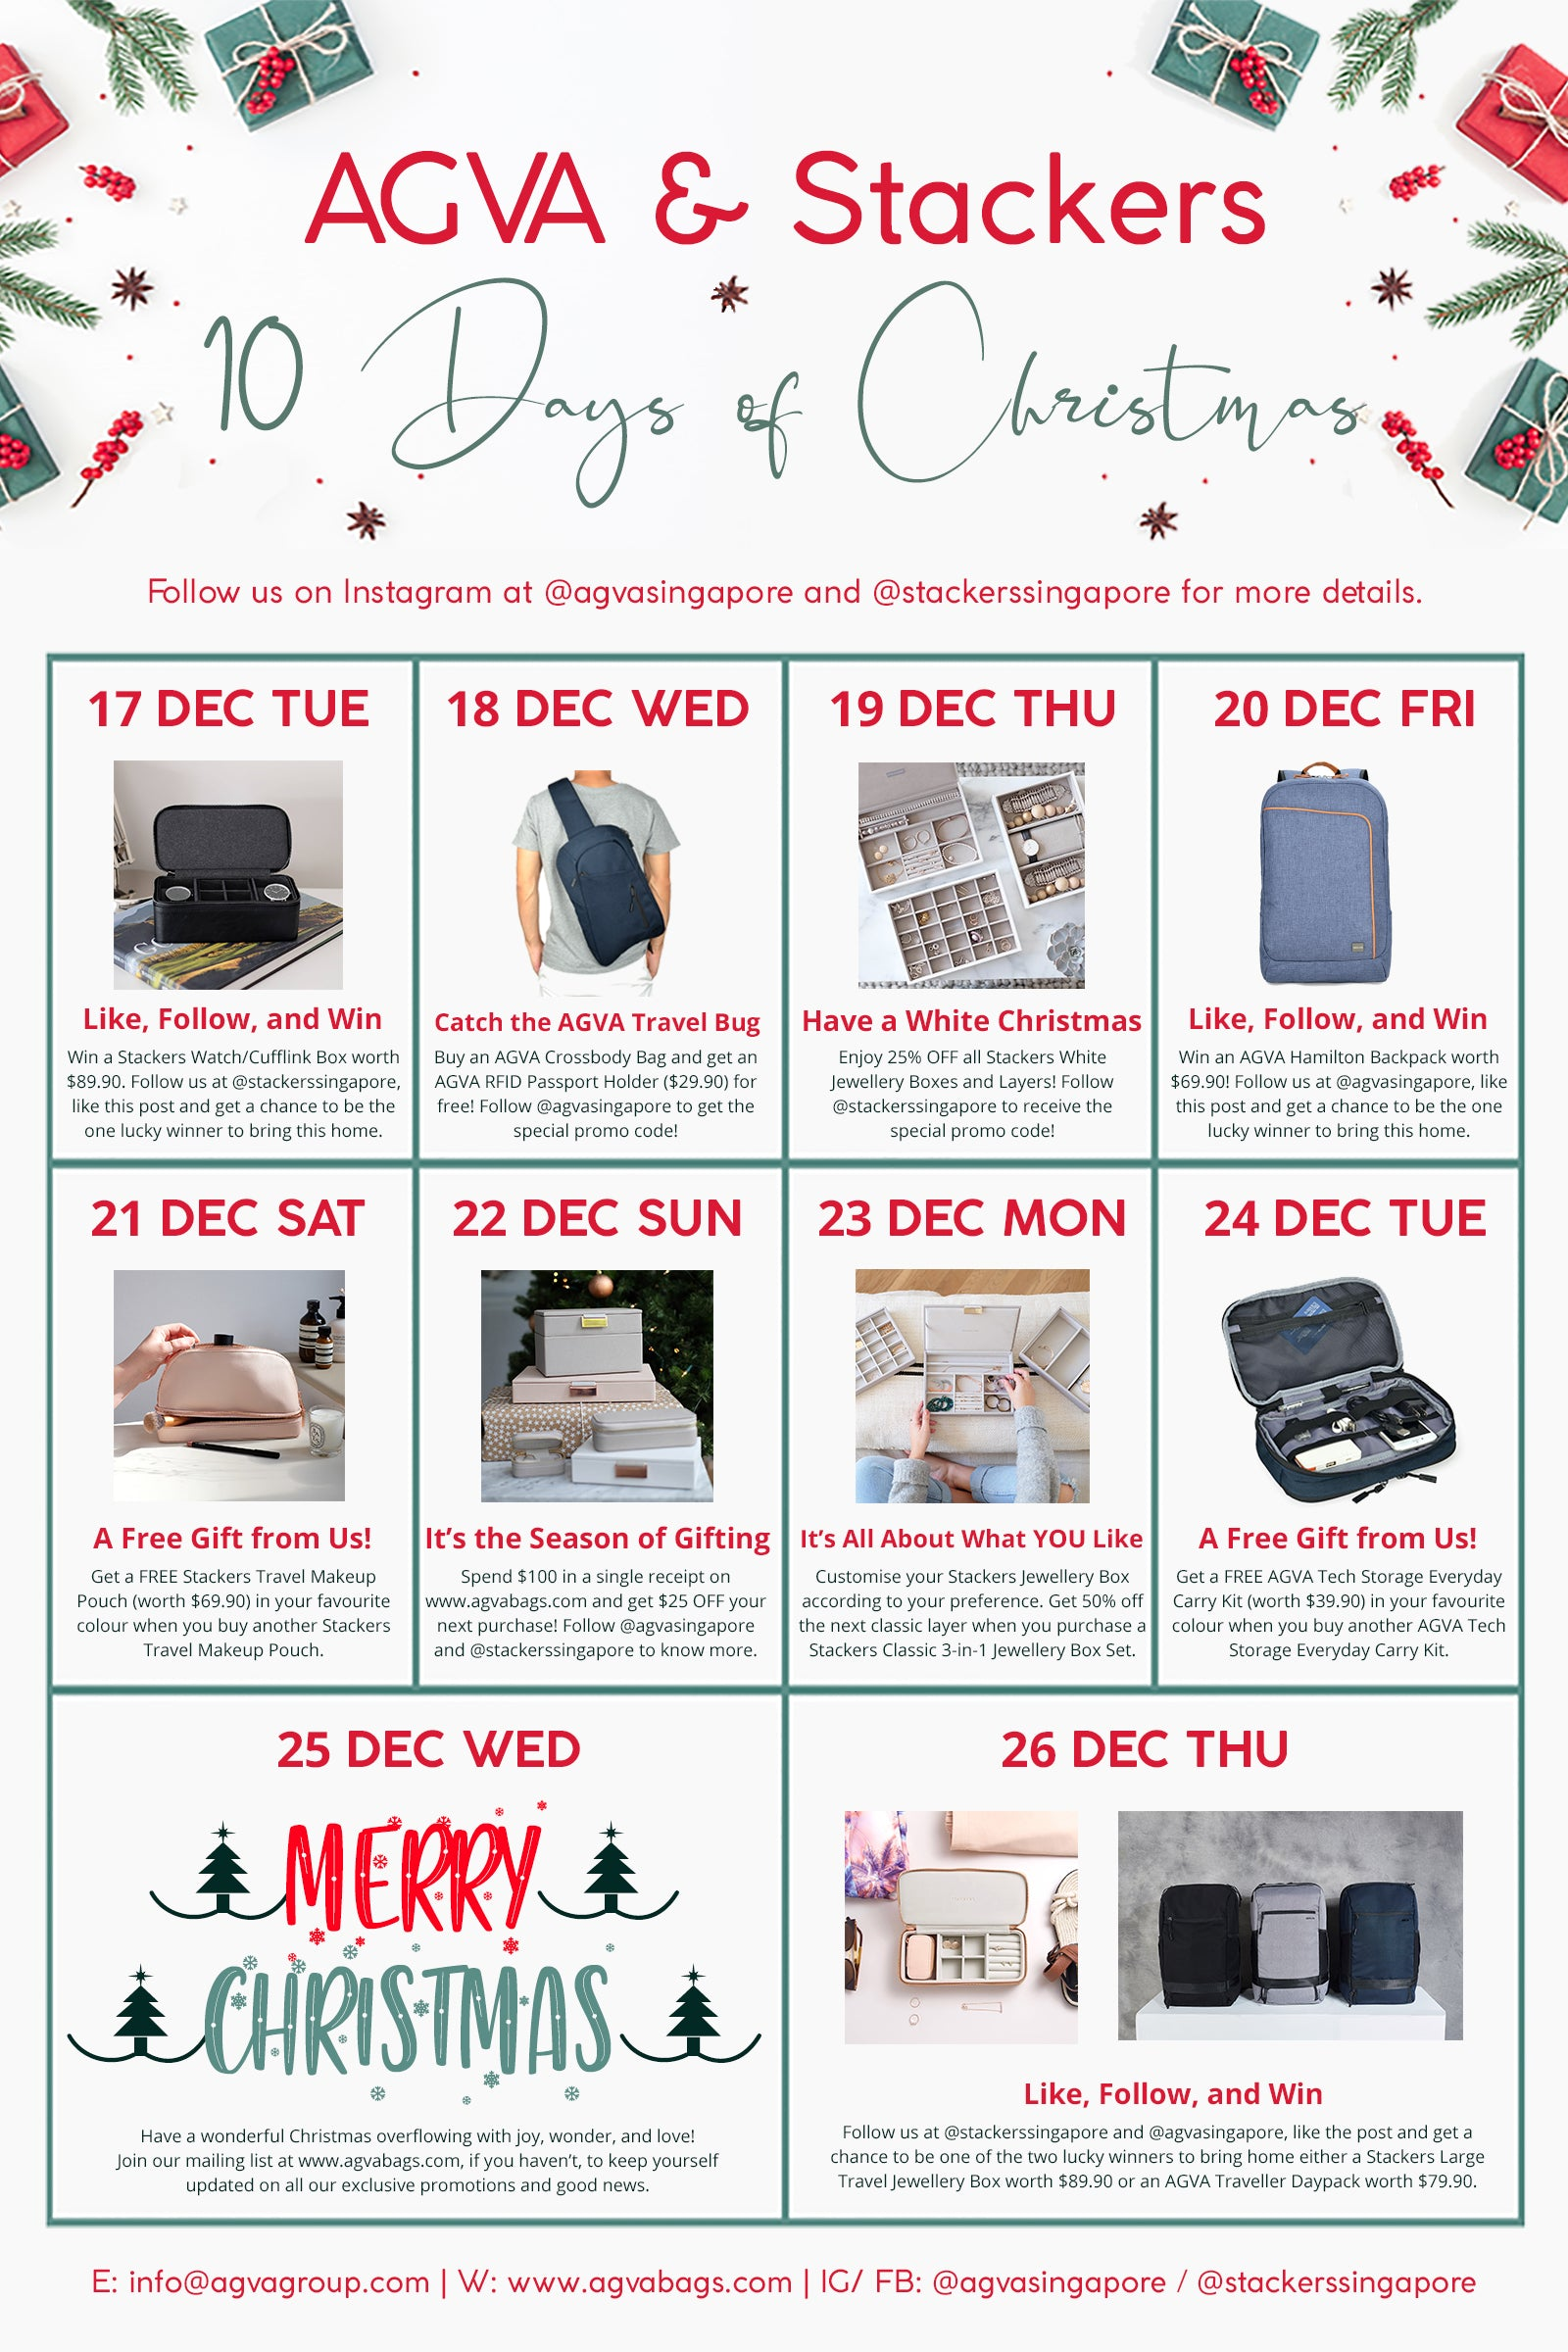 This is AGVA and Stackers 10 days of Christmas Promotions! Enjoy wonderful and attractive discounts as you shop during this festive period!